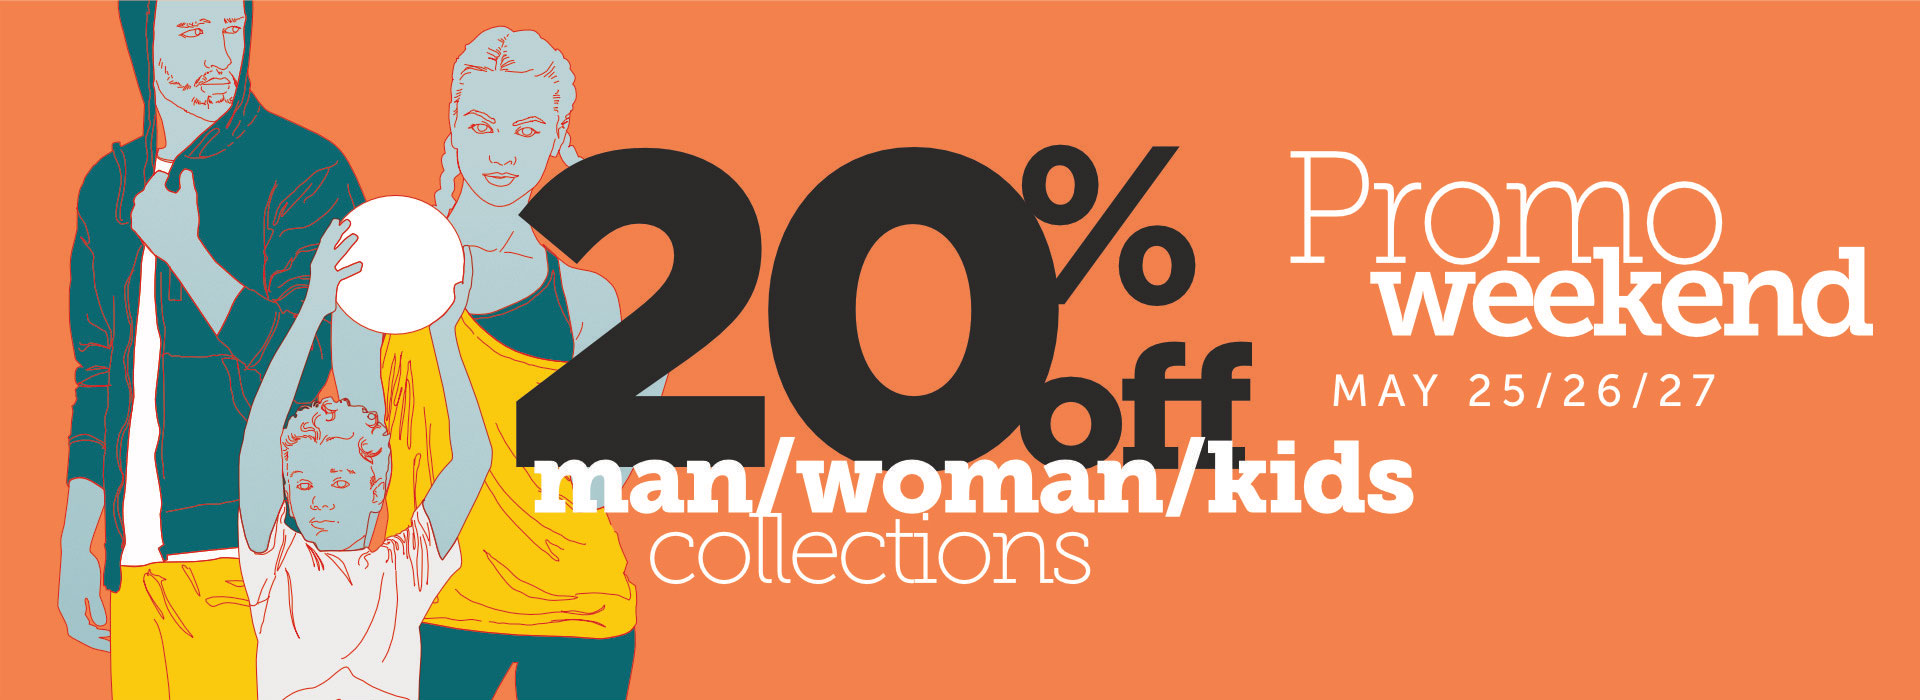 Clothing Weekend Promotion | Mens Womens Kids Spring Summer 2018 20% off